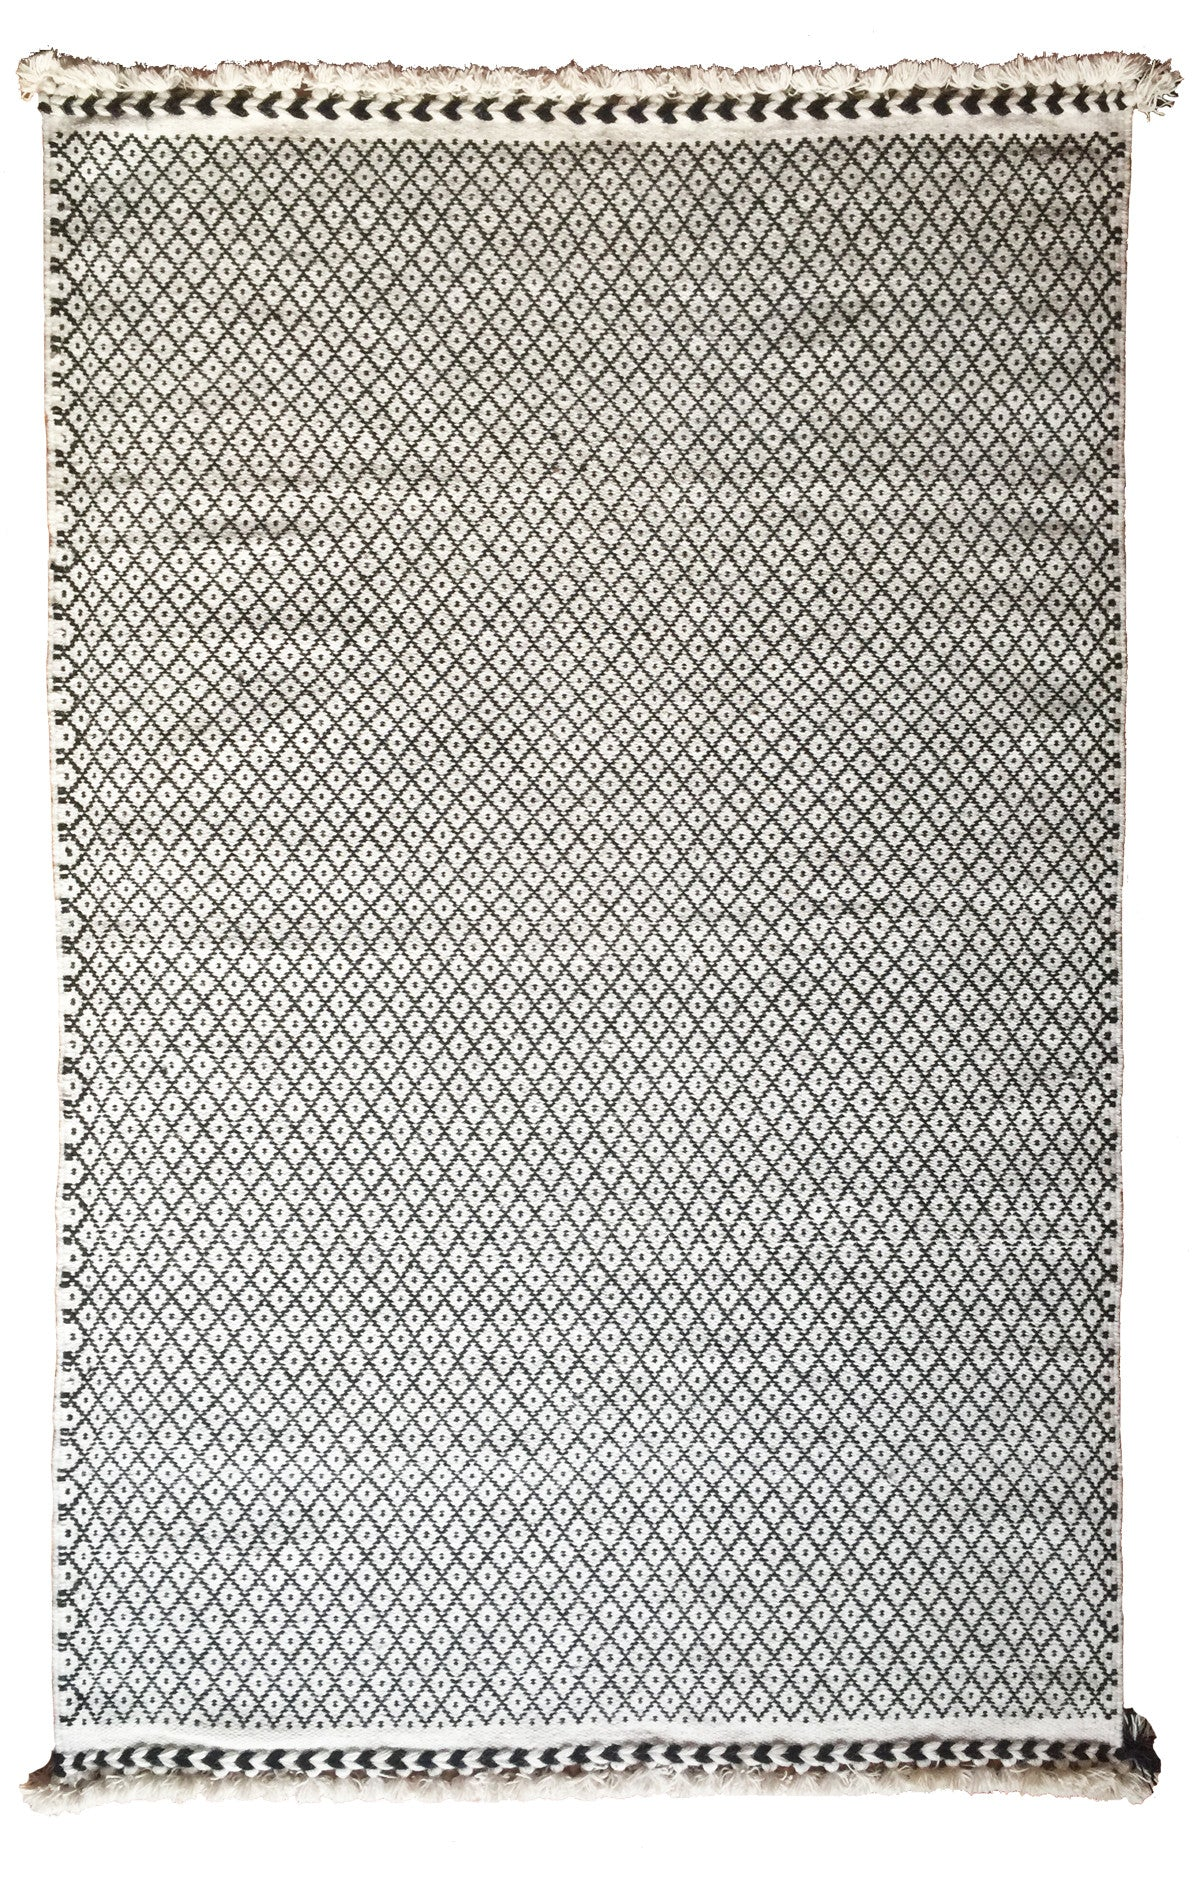 SUNDAY / MONDAY Handwoven 100% Wool Indian Flatweave Rug, Rann in White, Black and white wool area rug made in tribal indigenous lattice diamond.  Handmade in Kutch, Gujarat